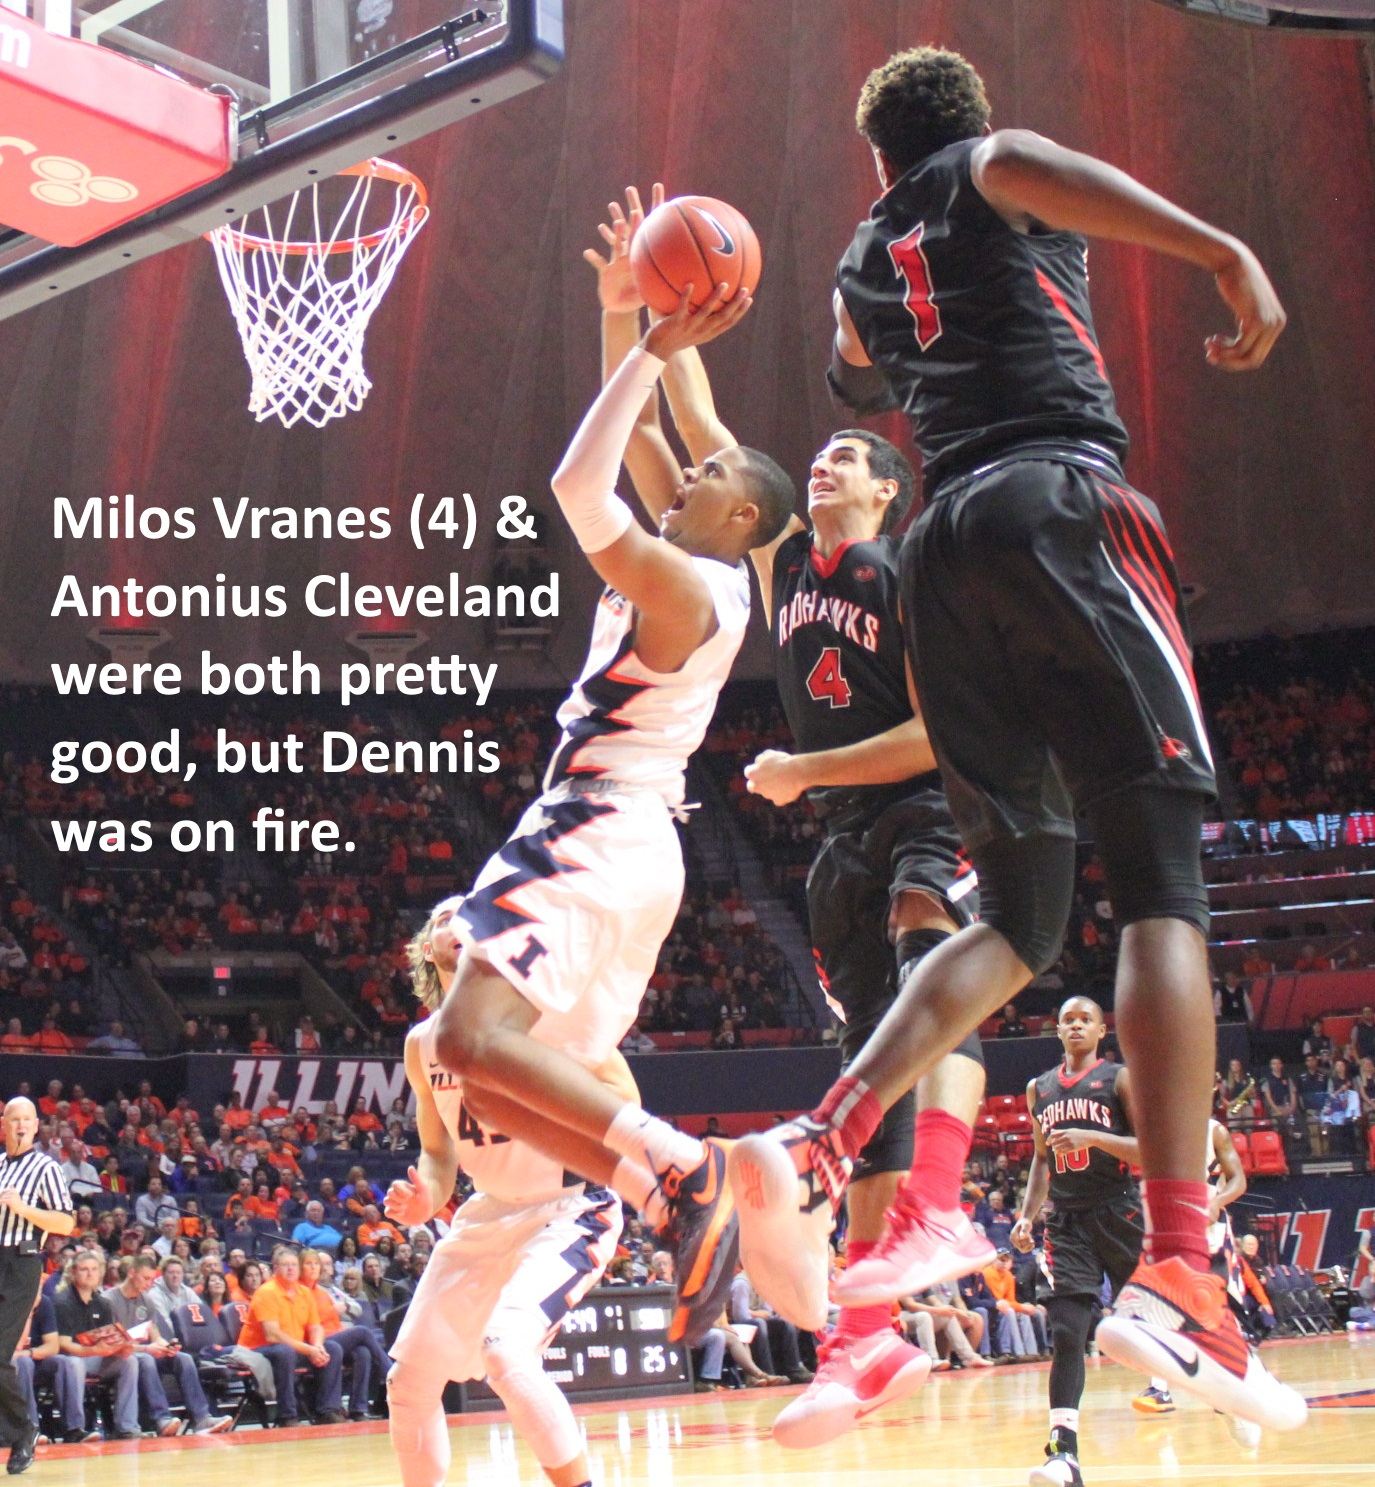 milos-vranes-4-and-antonius-cleveland-were-both-pretty-good-but-dj-williams-was-on-fire